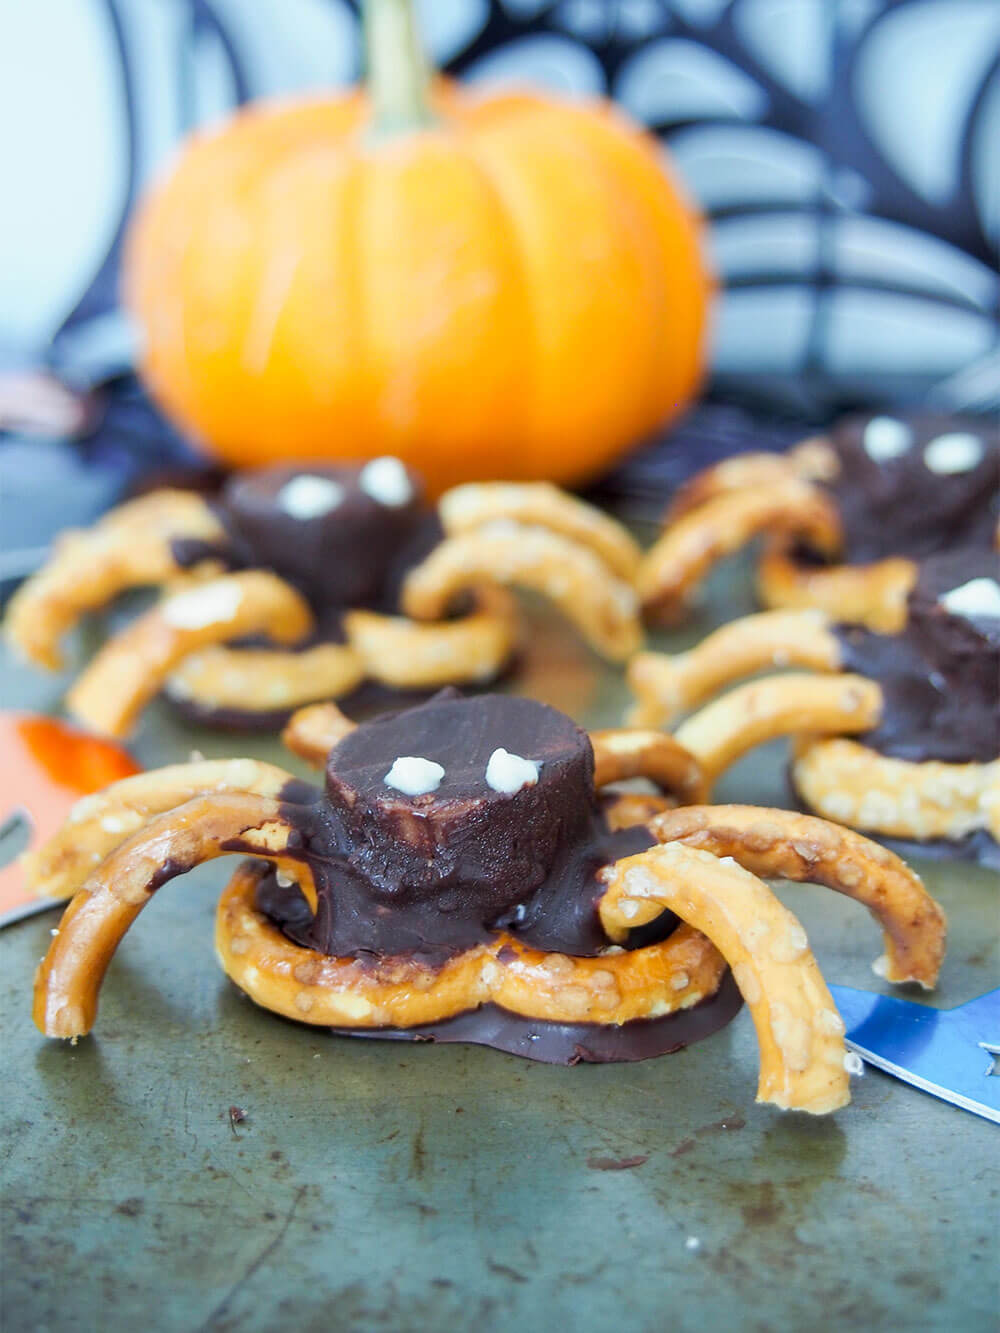 These chocolate pretzel spiders are the perfect fun snack for your next Halloween party! Easy enough for the kids to help make and a tasty sweet-salty mix.